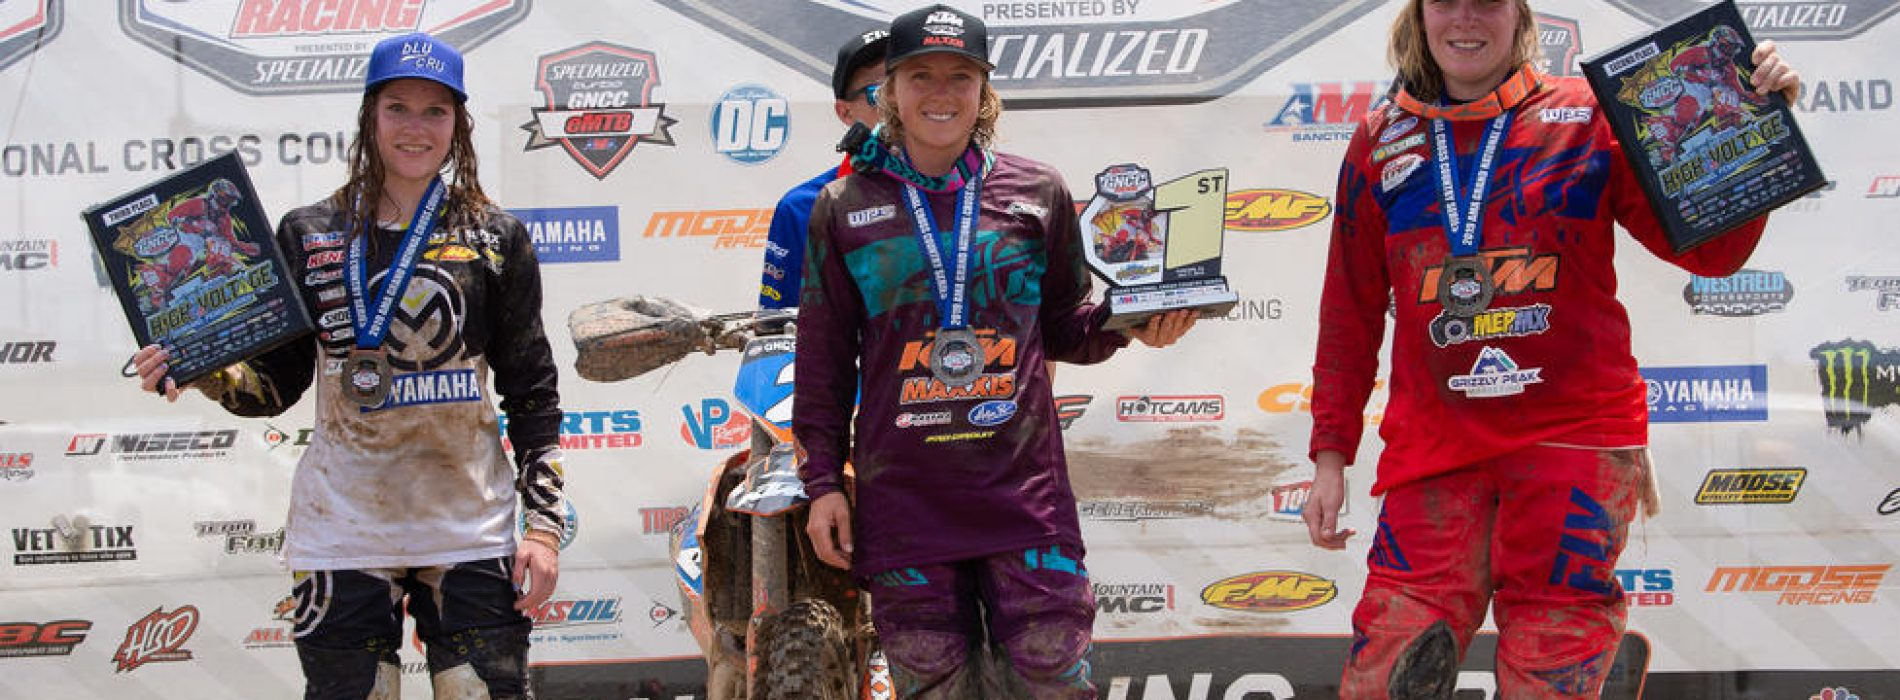 Rachael Archer gains 3rd podium at GNCC WXC Round 9- High Voltage